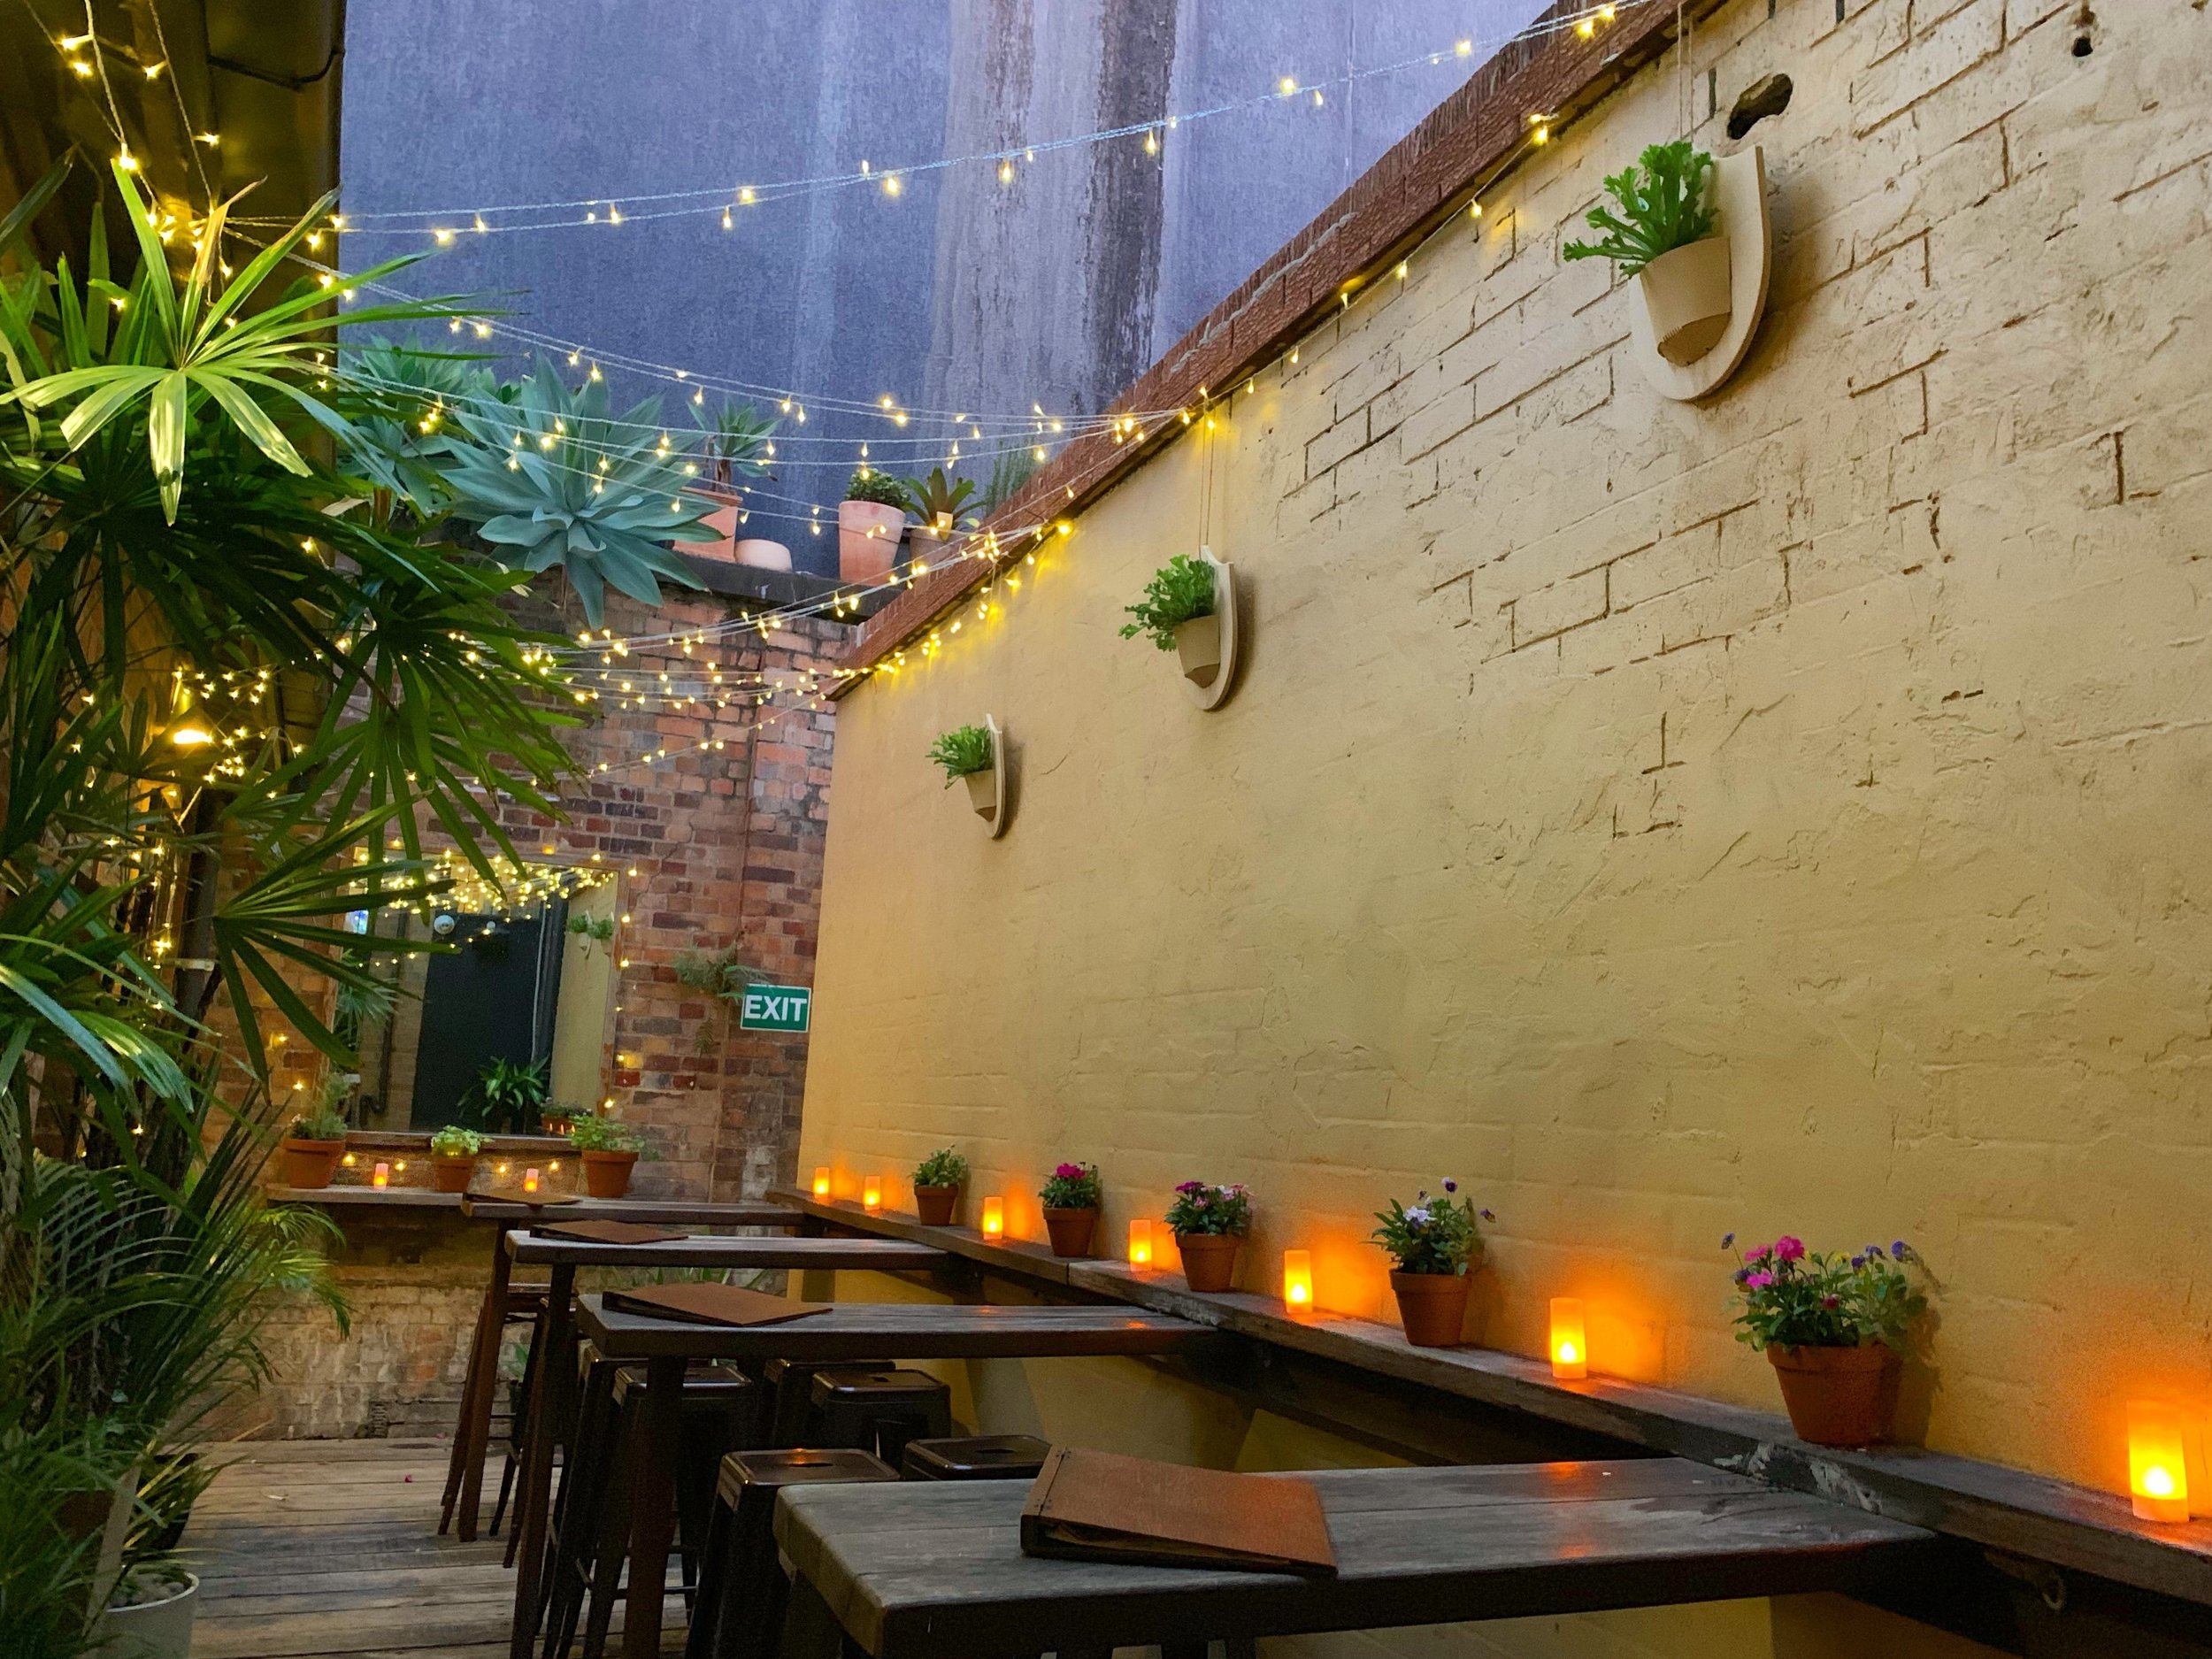 The cosy bar courtyard at Proud Henry in Fortitude Valley with fairy lights, candles, plants and exposed brick walls